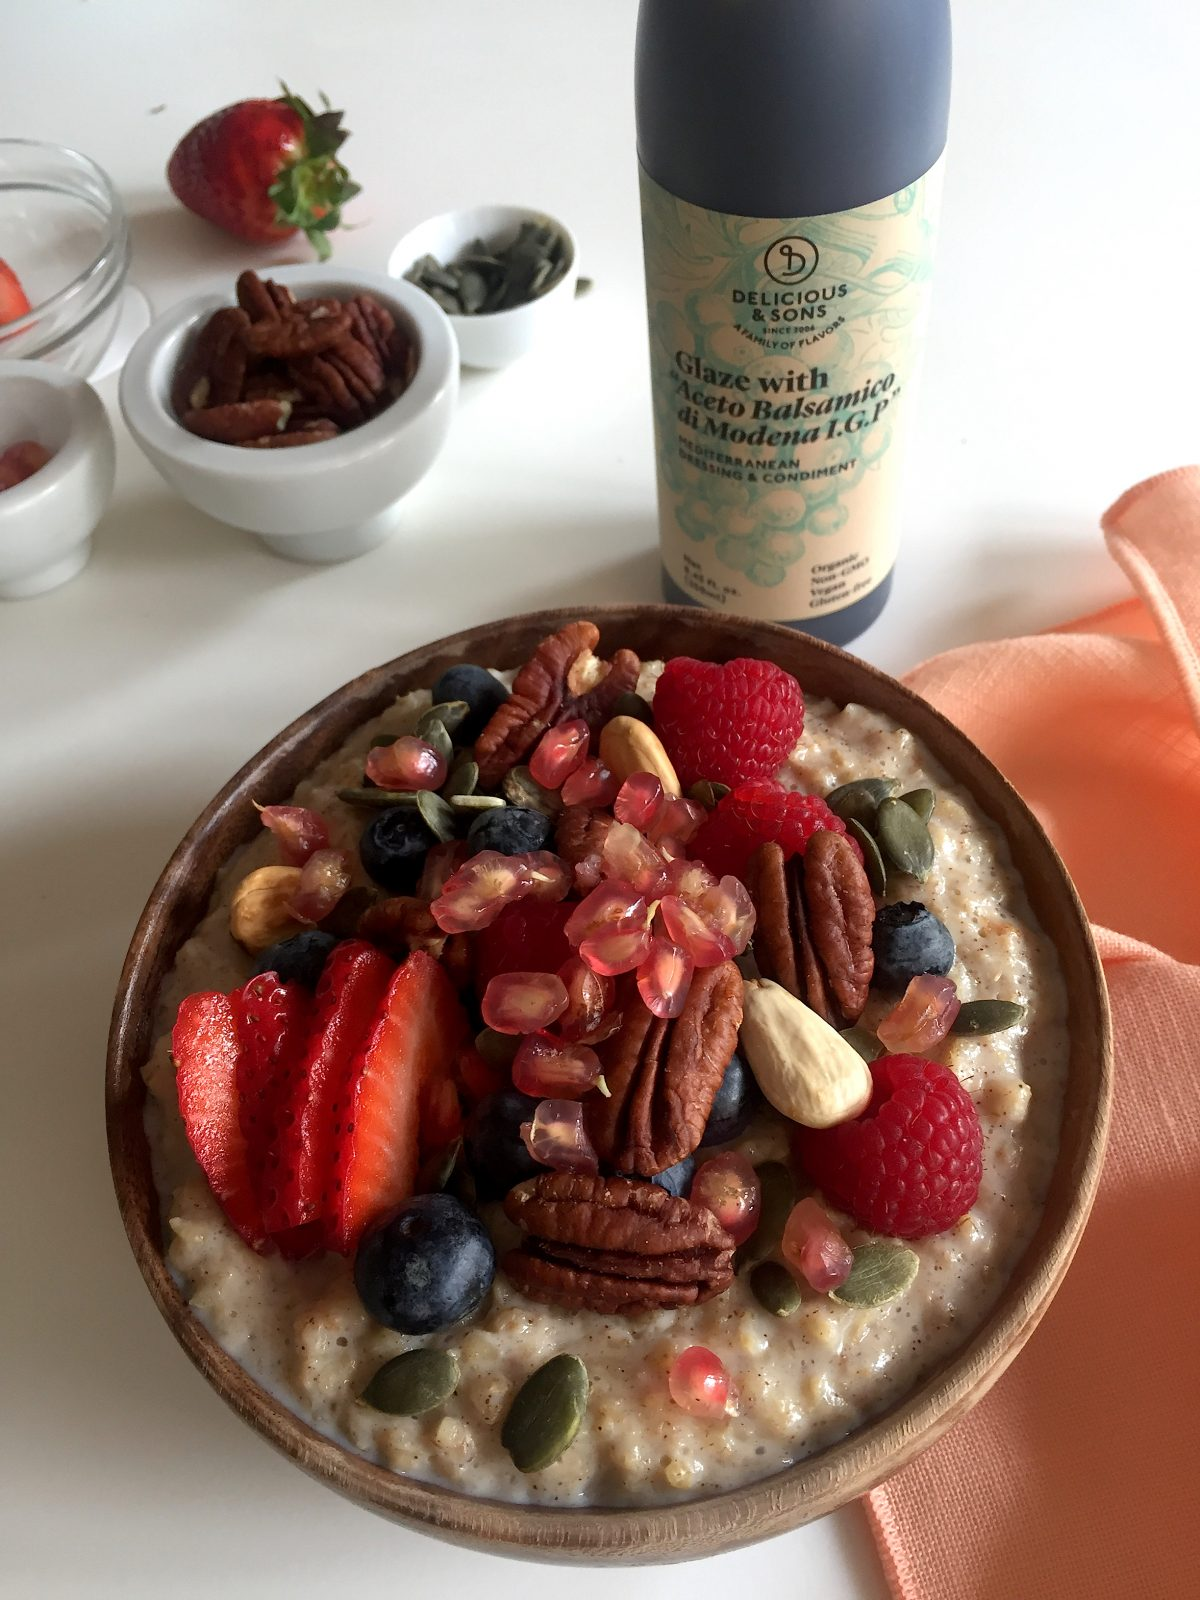 Porridge: trendy or healthy meal? — Delicious & Sons